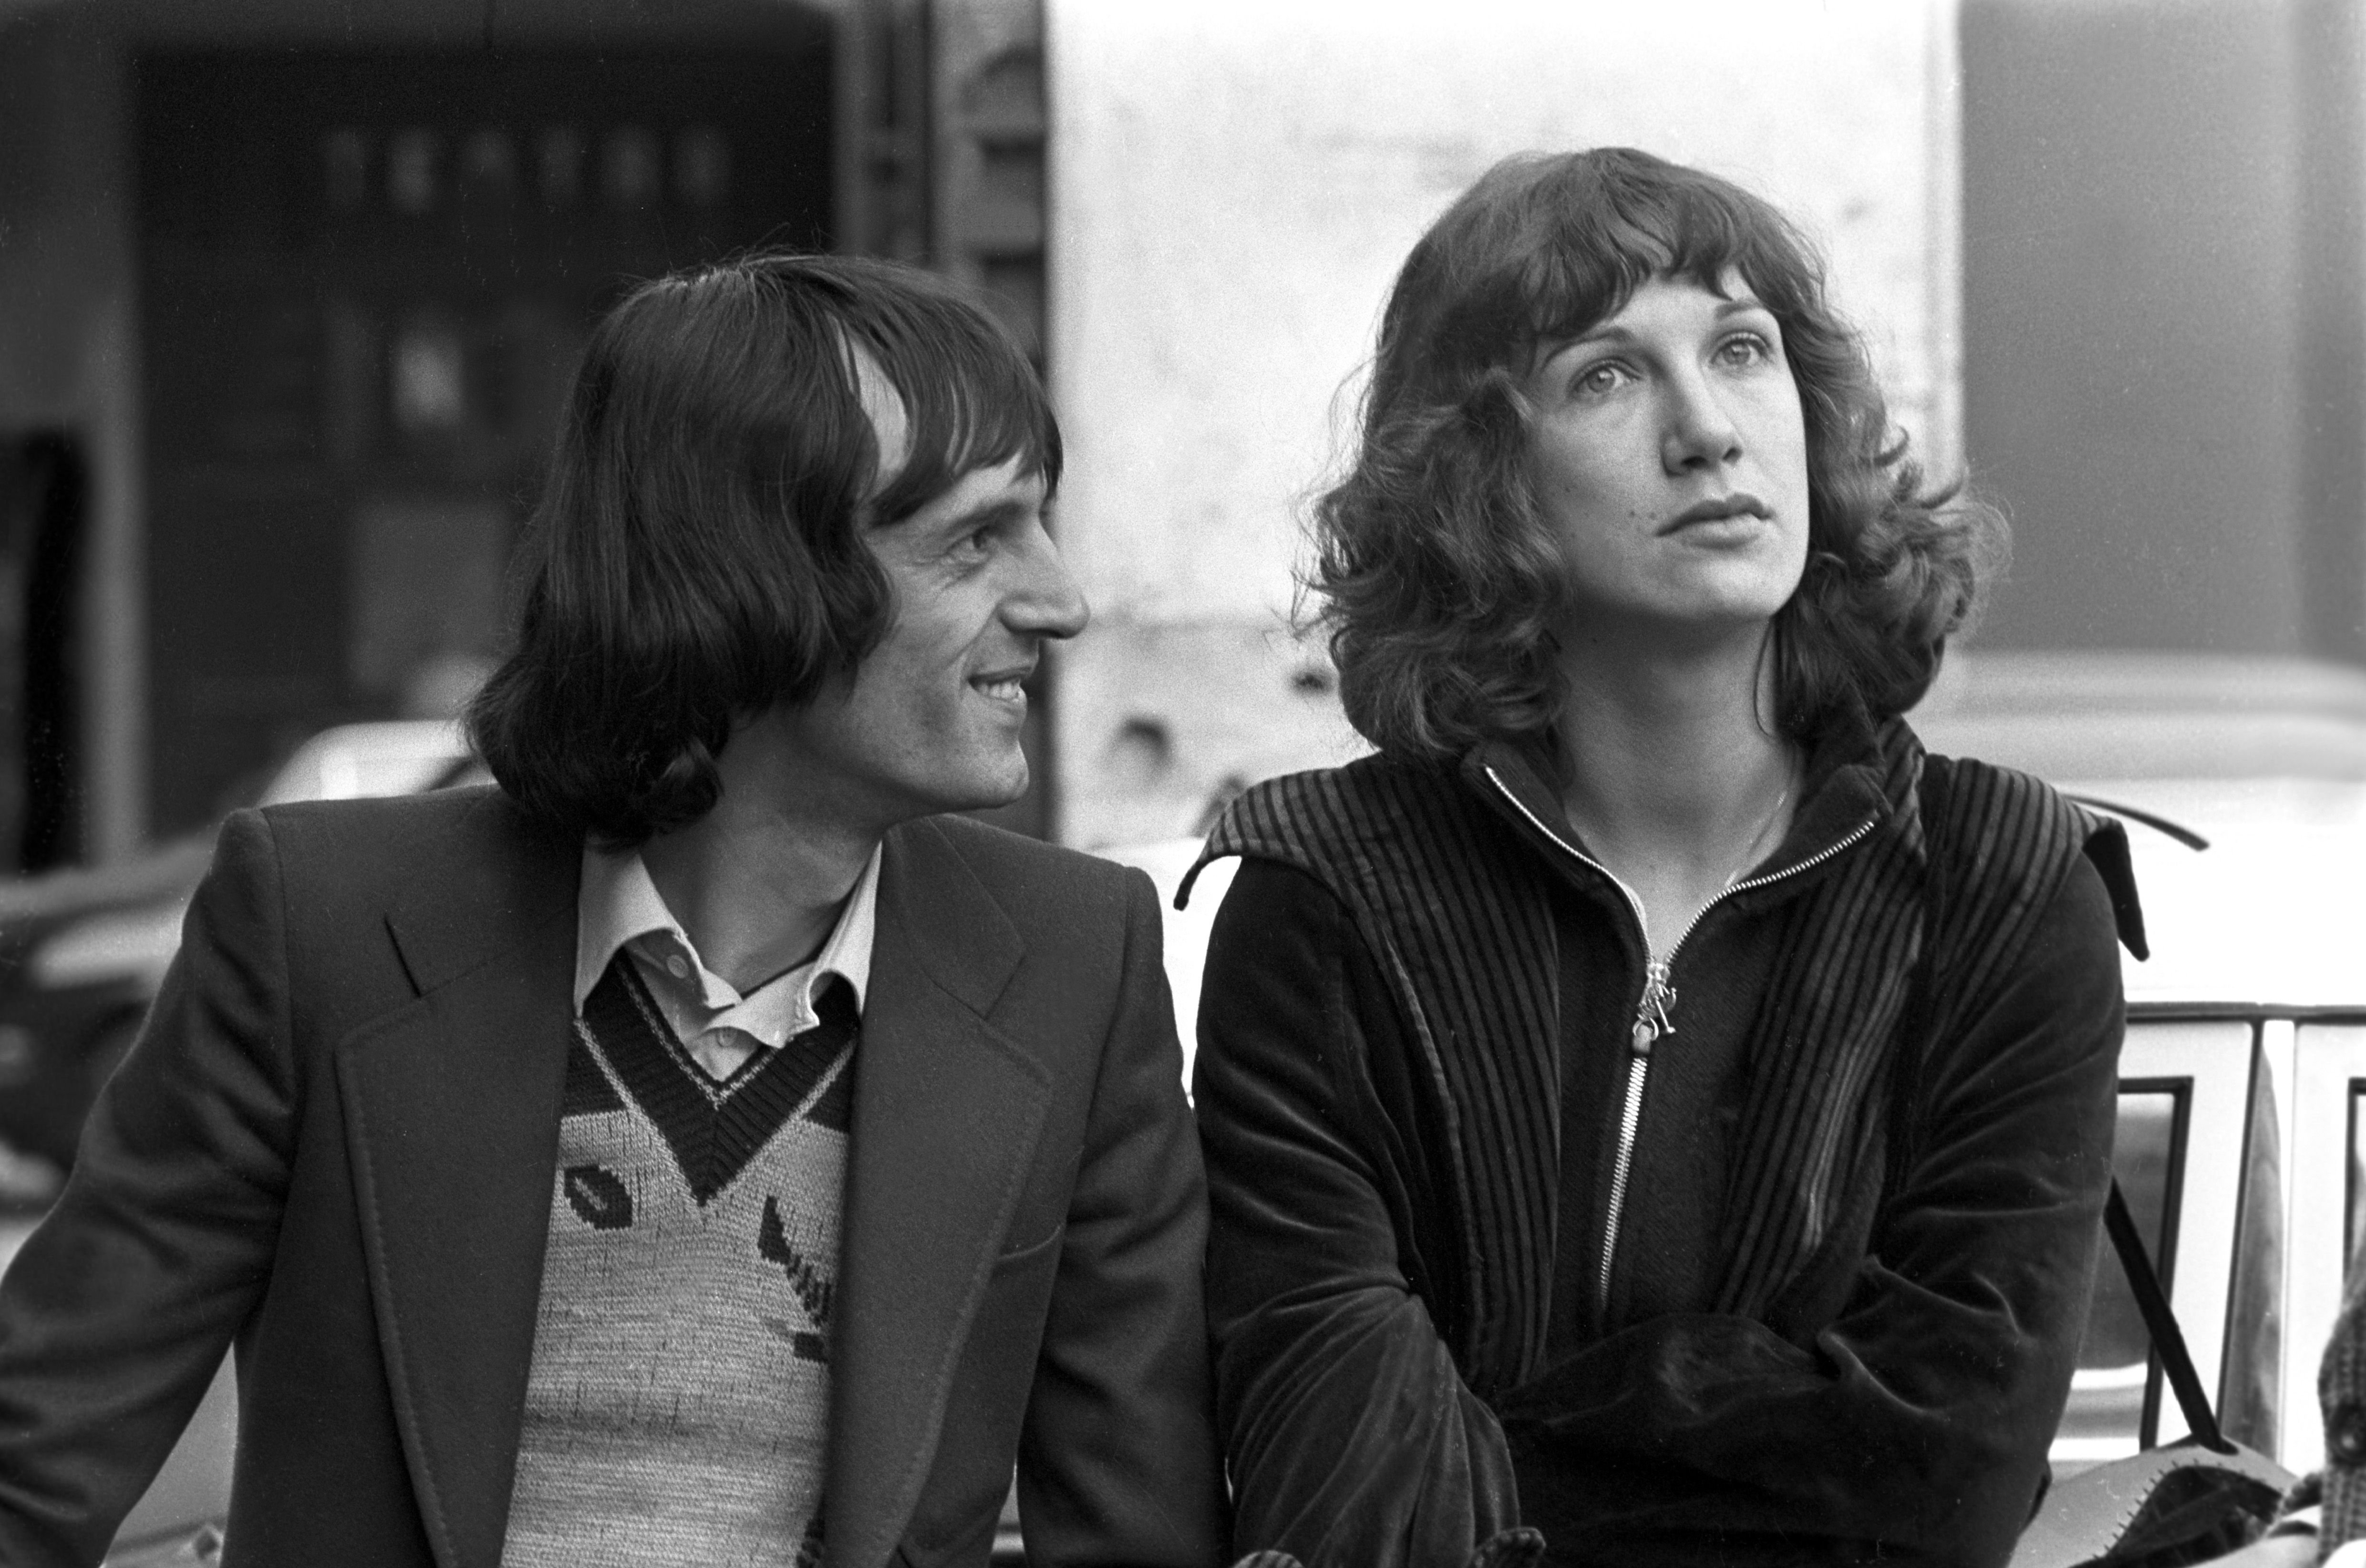 Dario Argento and Italian actress Daria Nicolodi on the set of Deep Red in 1975.   Photo: Getty Images